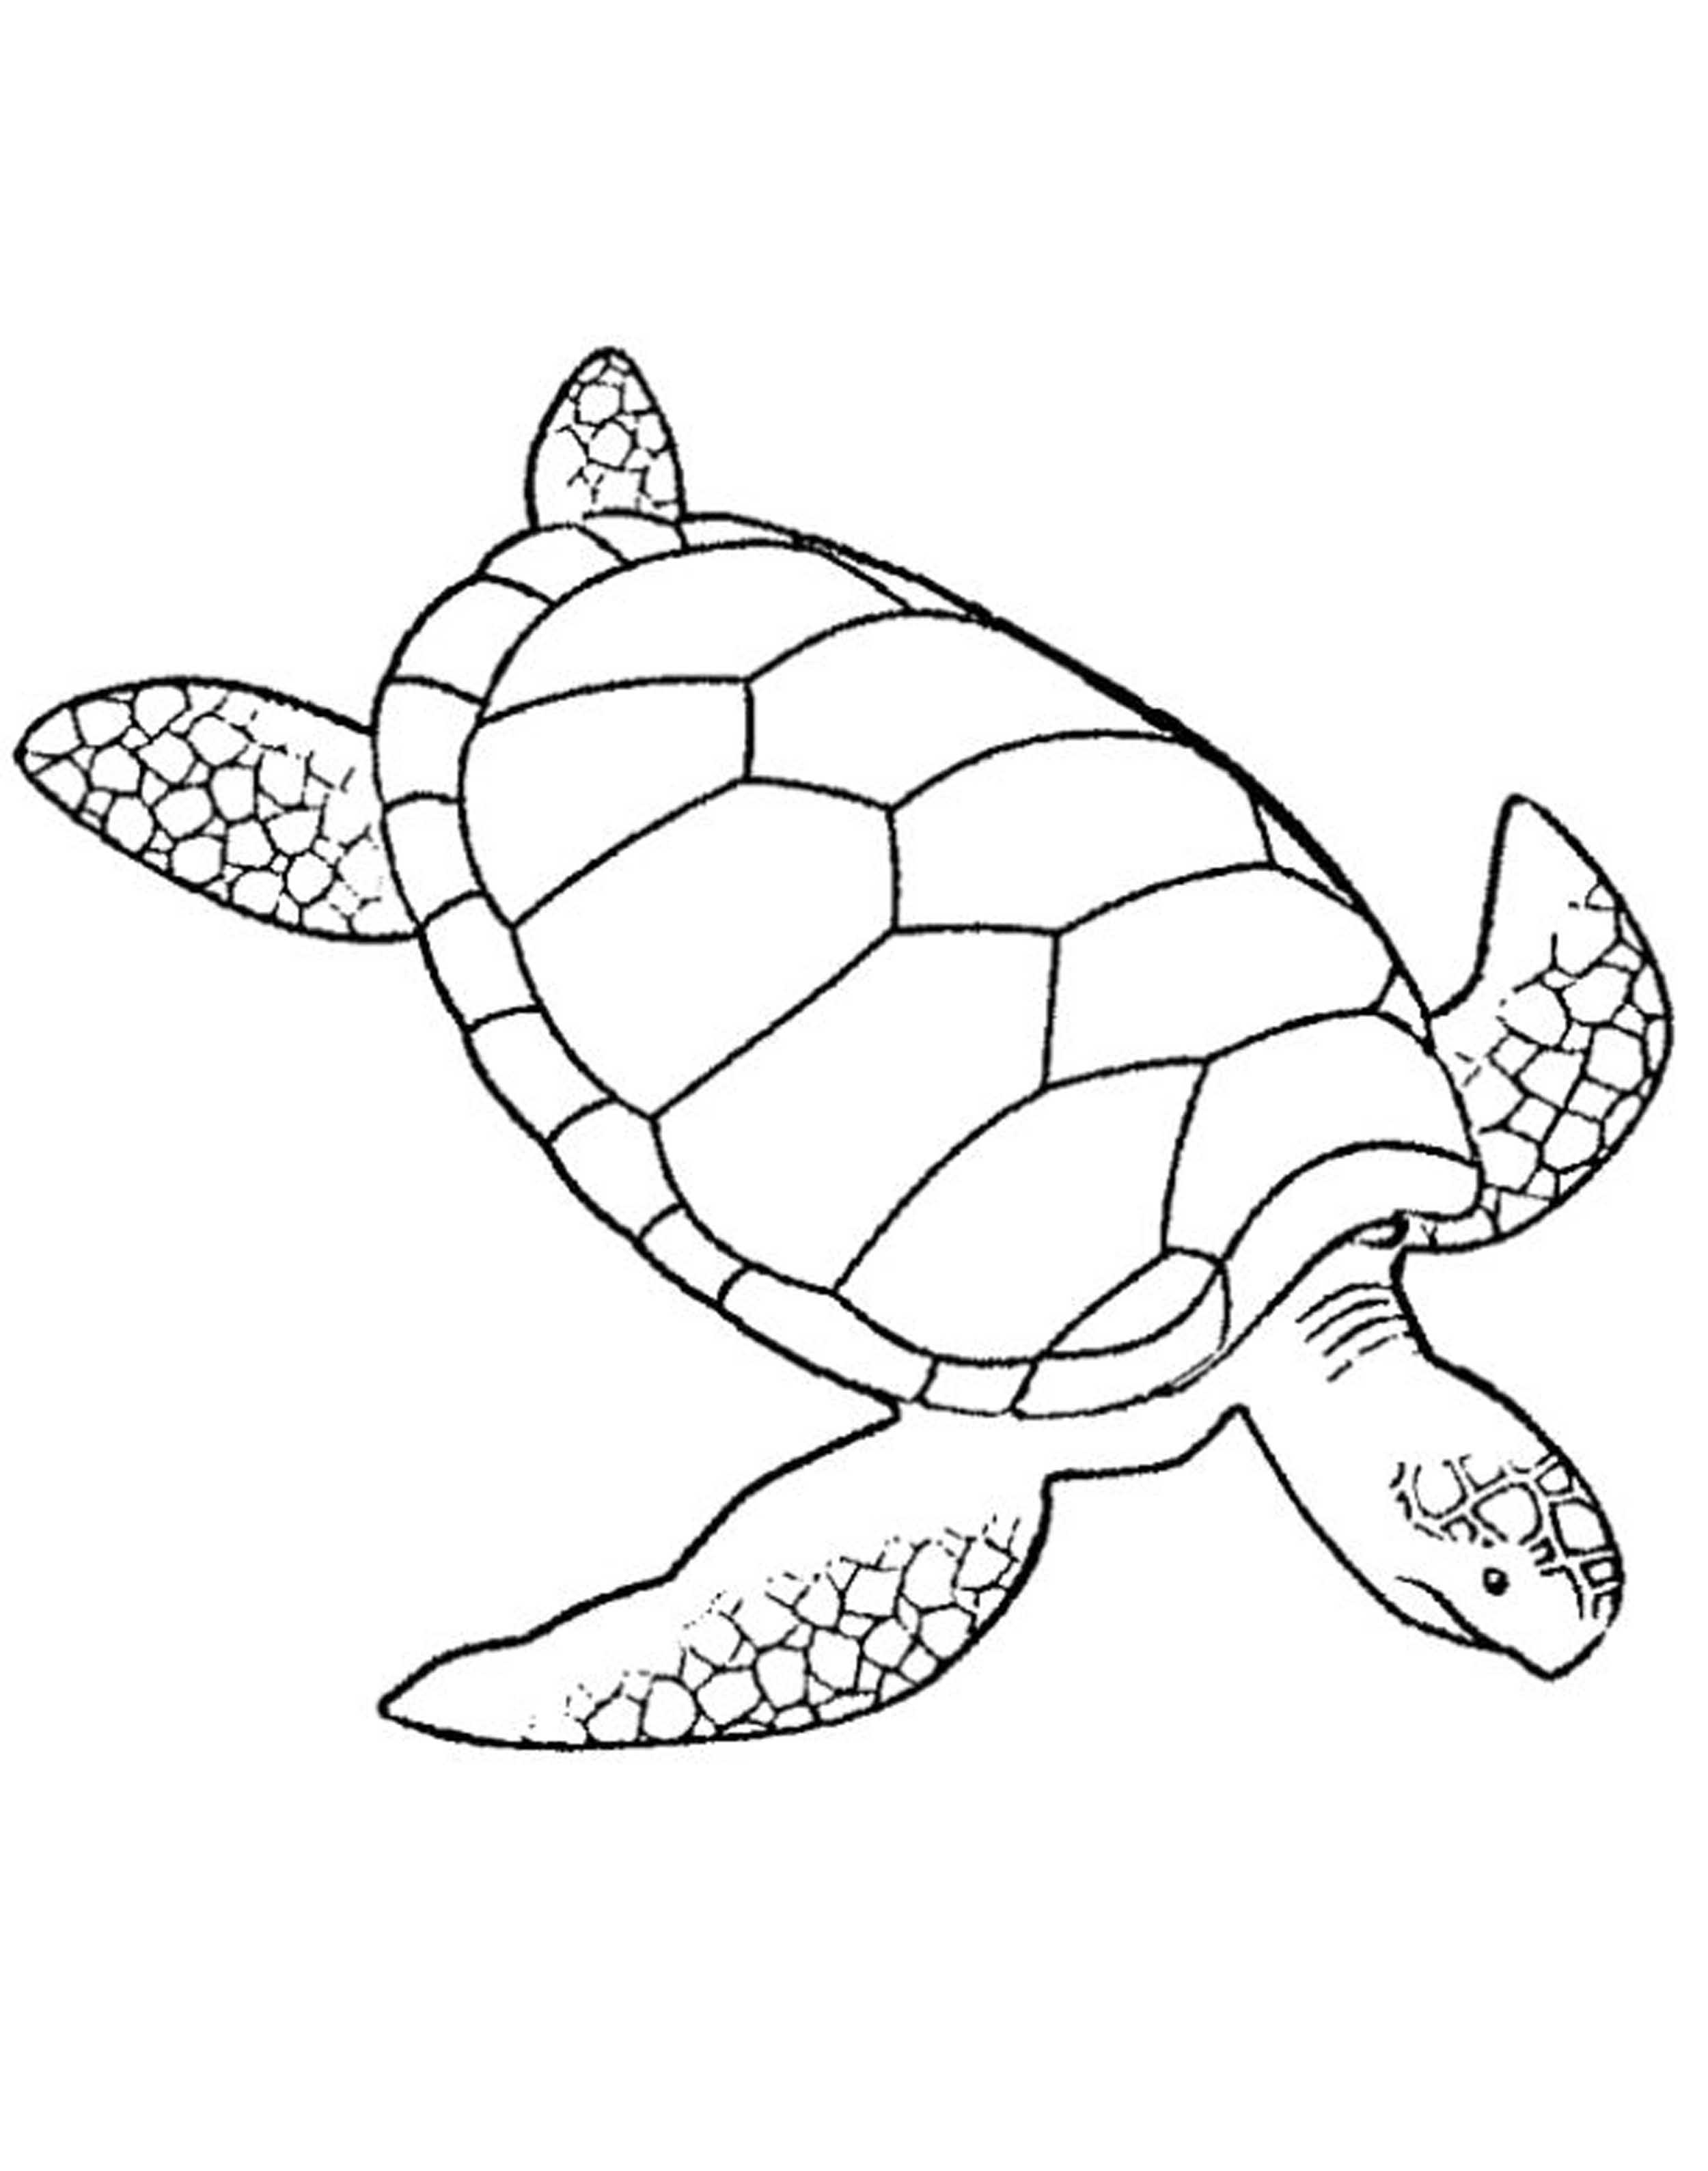 turtle pictures for coloring turtles to download for free turtles kids coloring pages pictures coloring turtle for